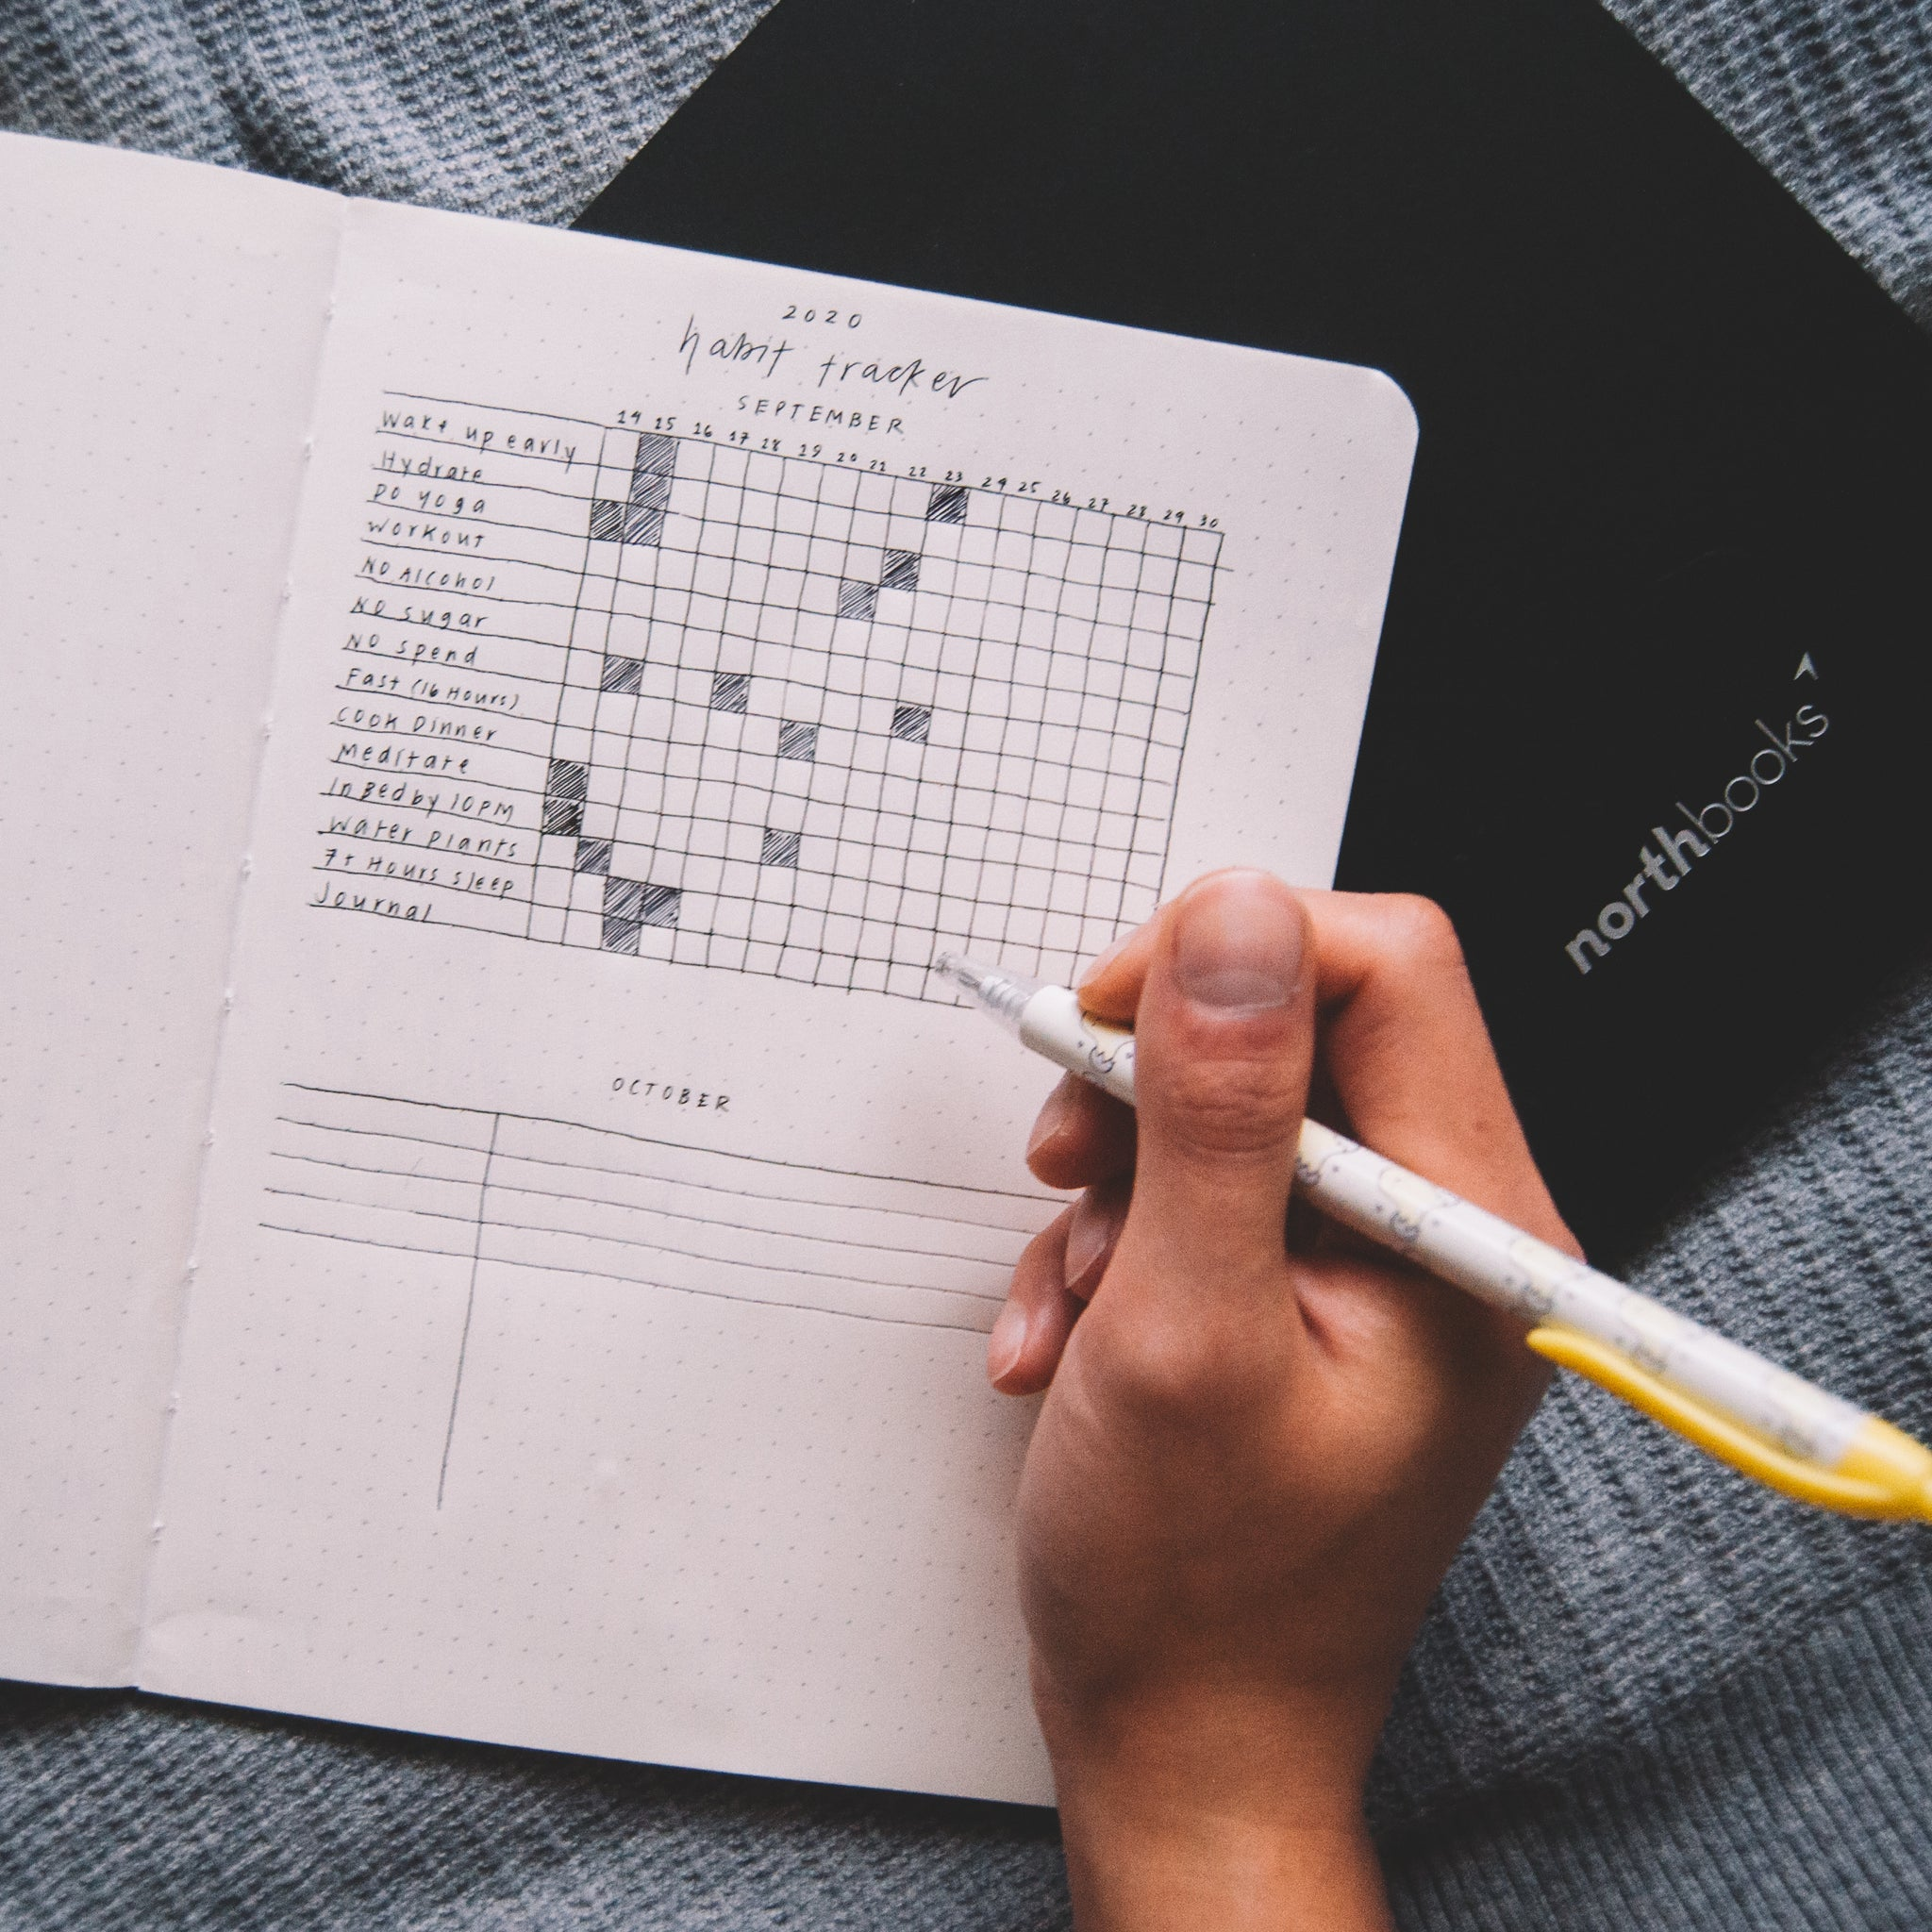 how to build better habits habit tracker bullet journal notebook eco friendly northbooks do more yoga drink water sleep 8 hours